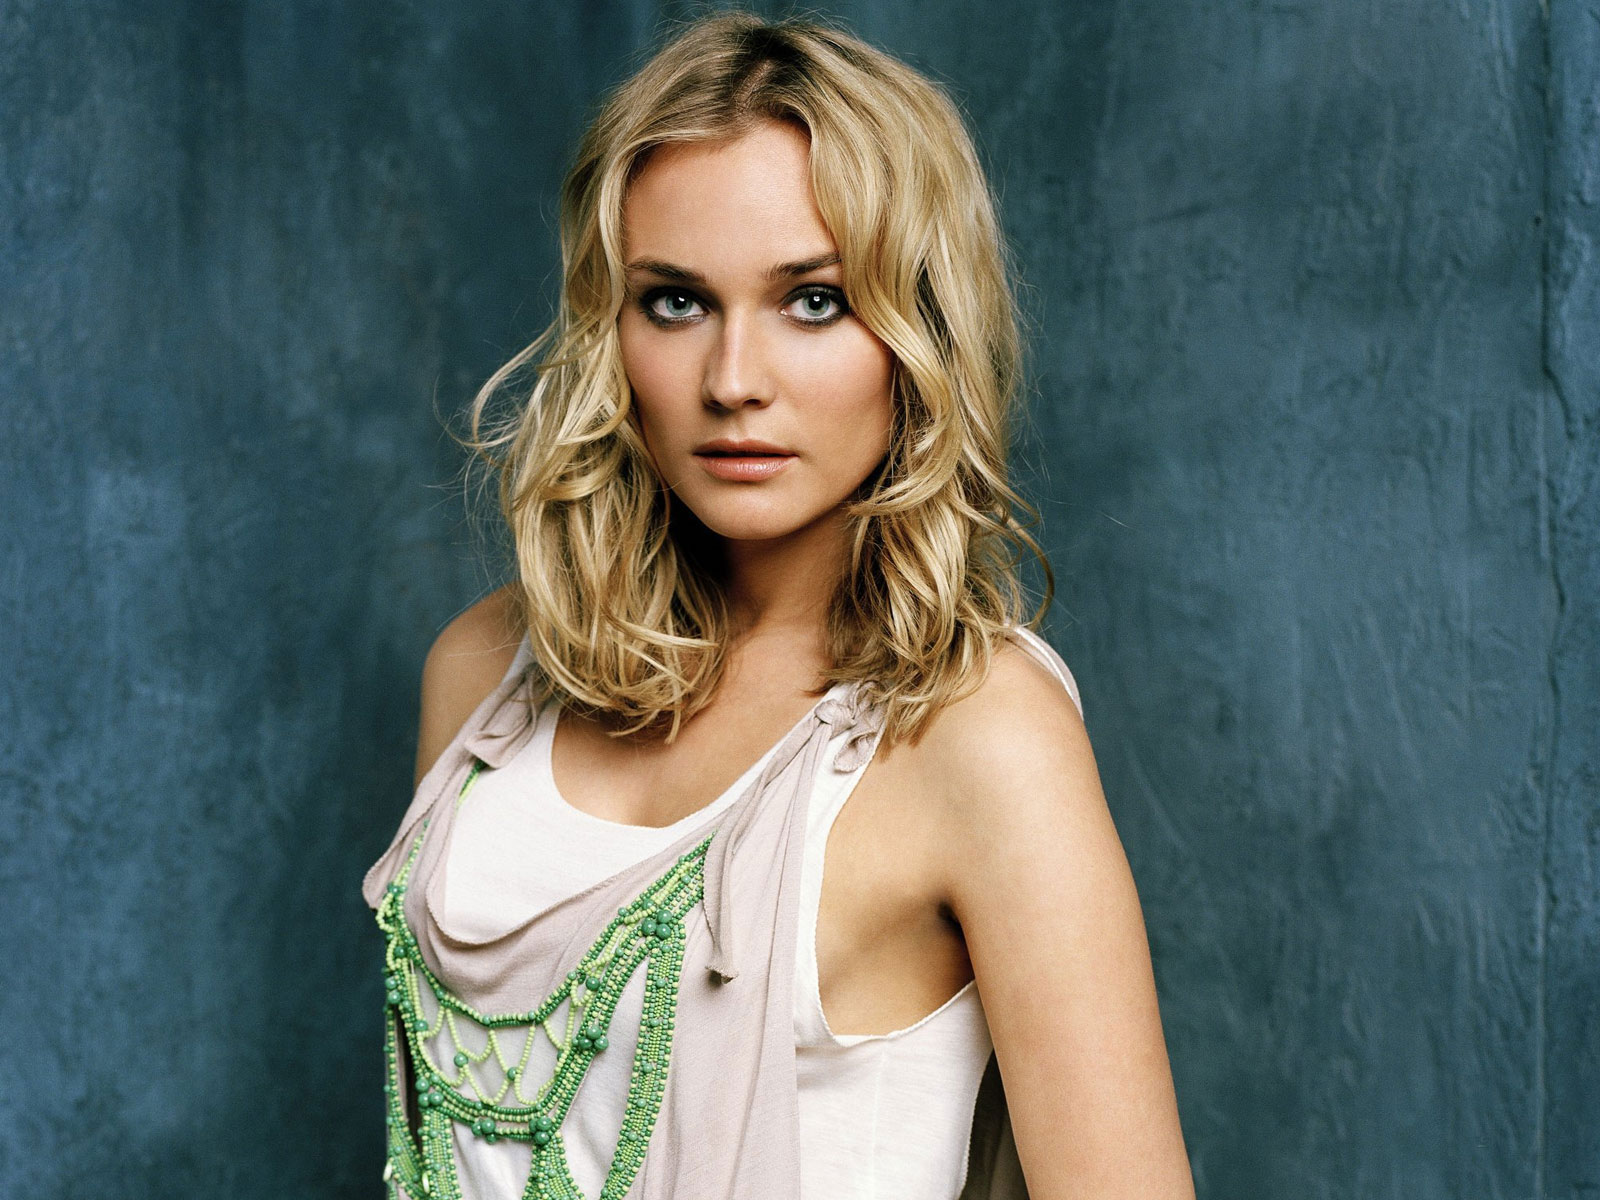 diane kruger hot picture gallery